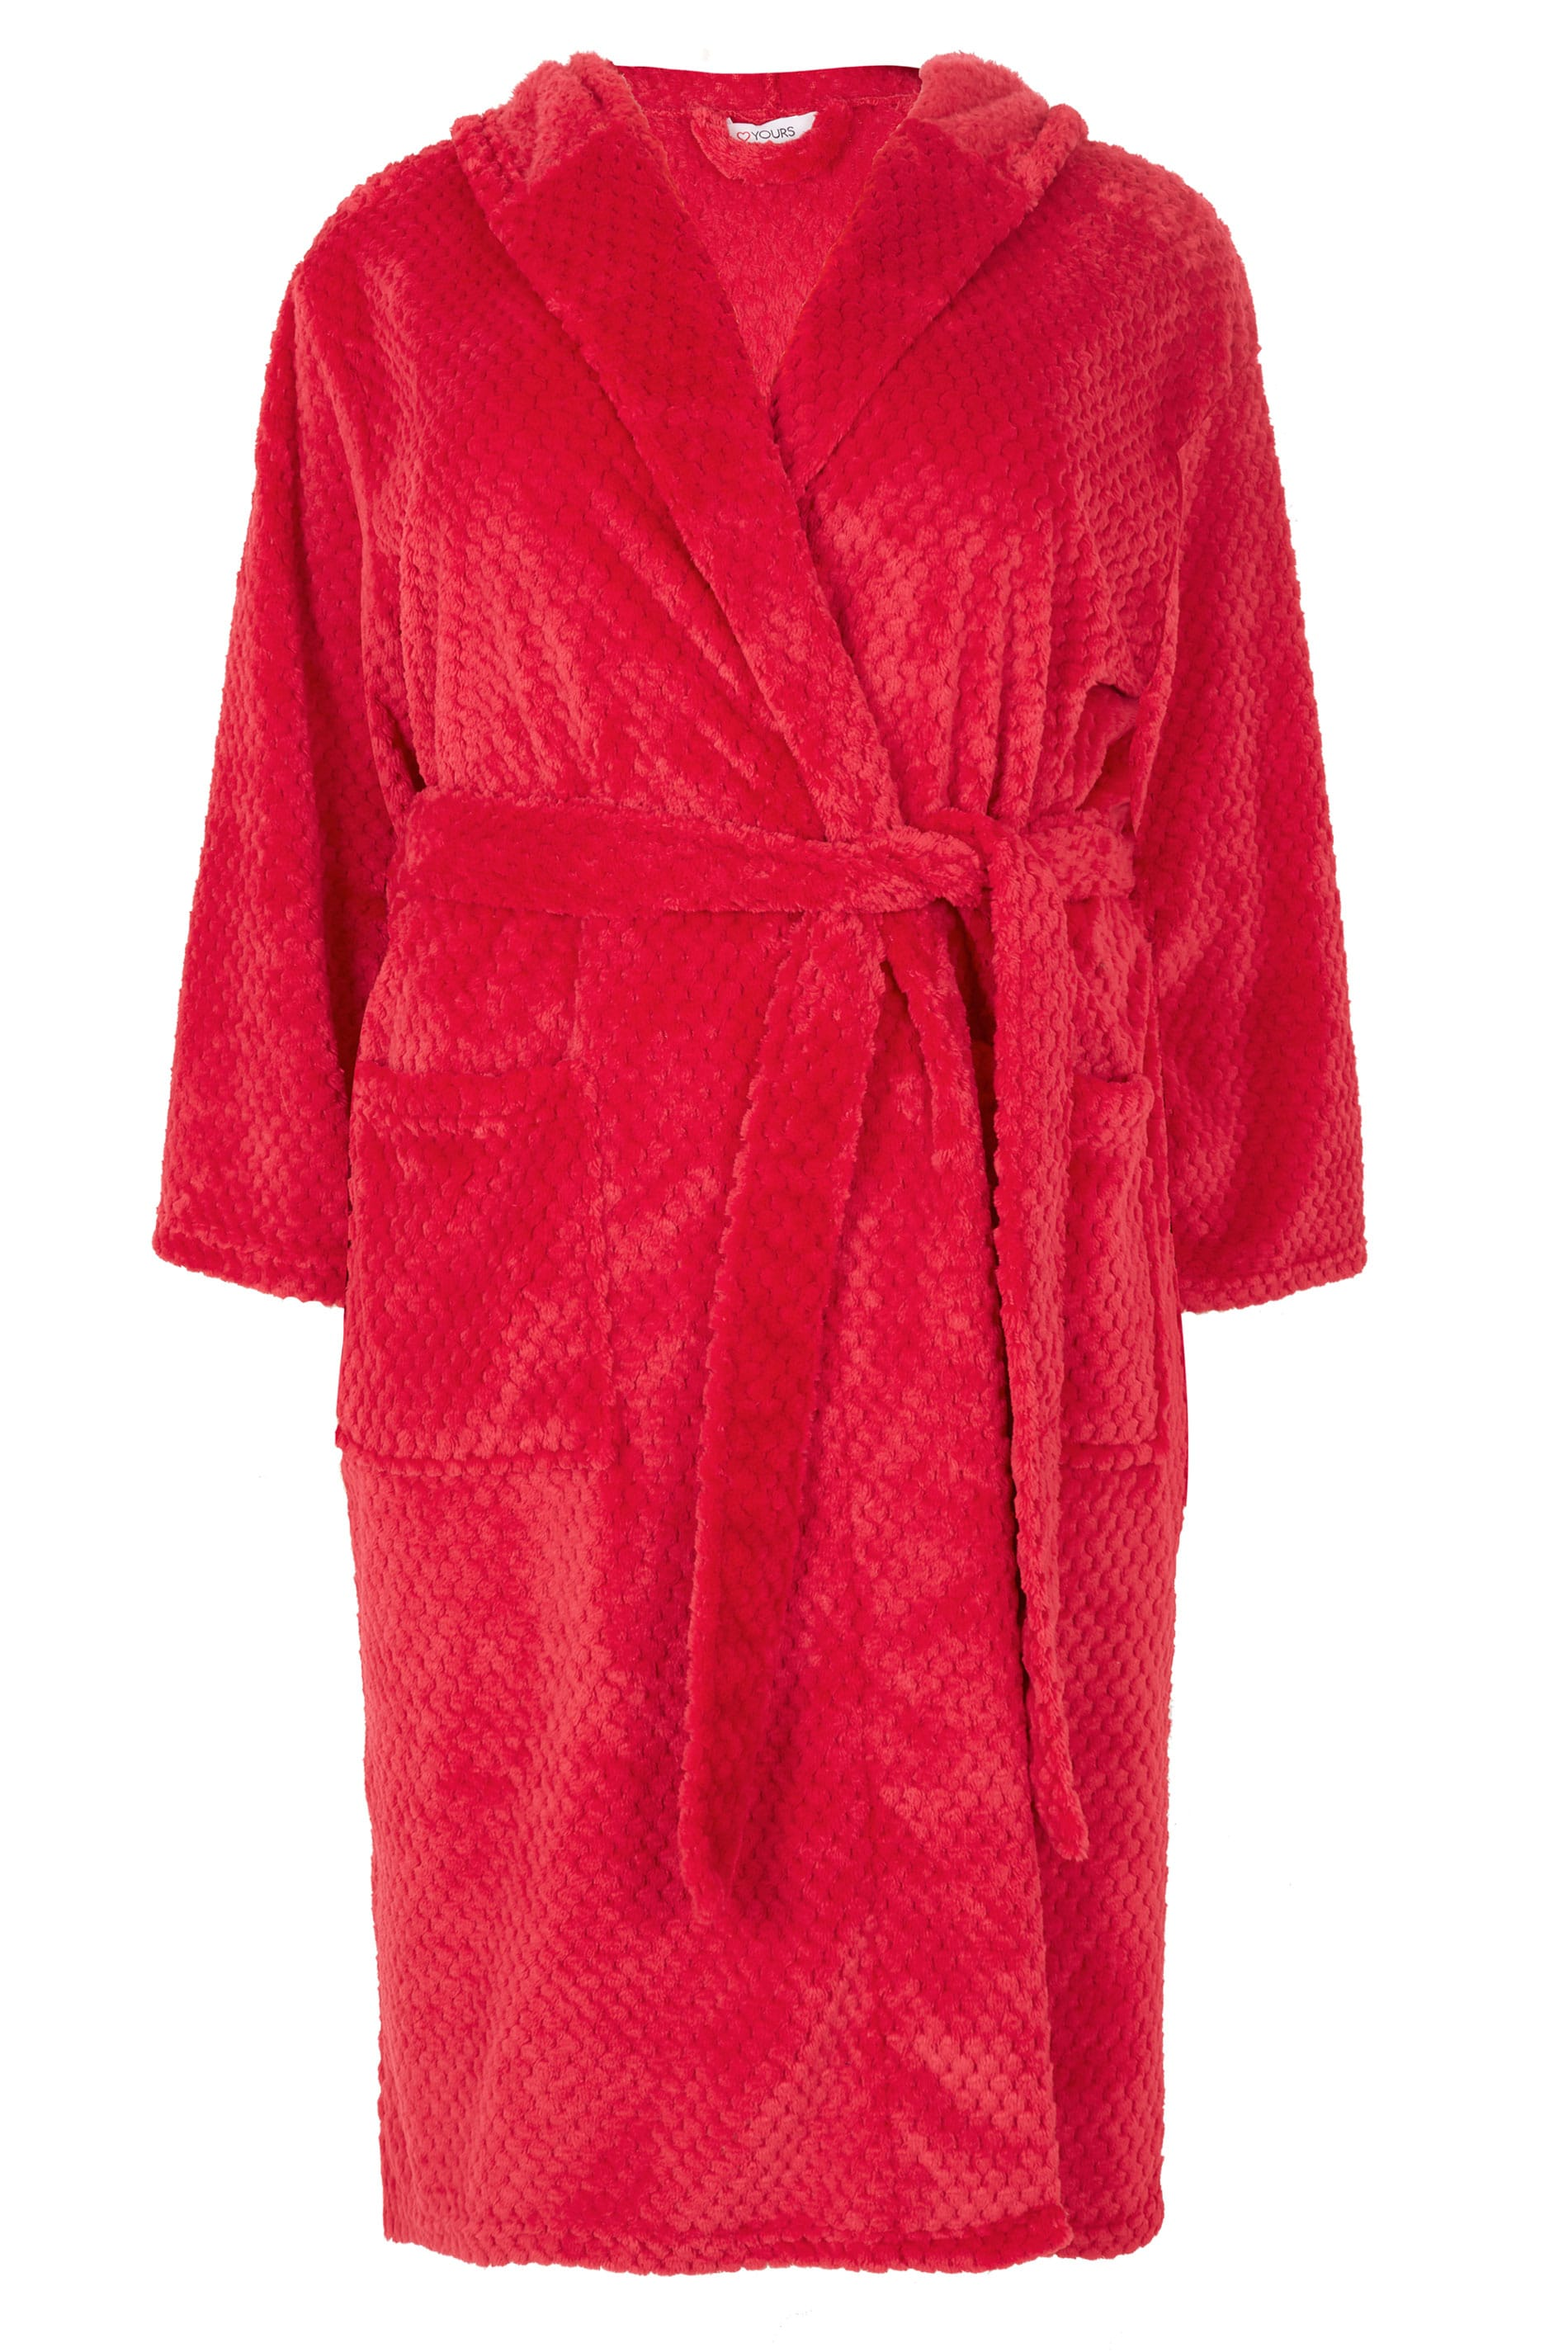 0e07101666 Red Fleece Hooded Dressing Gown With Pockets